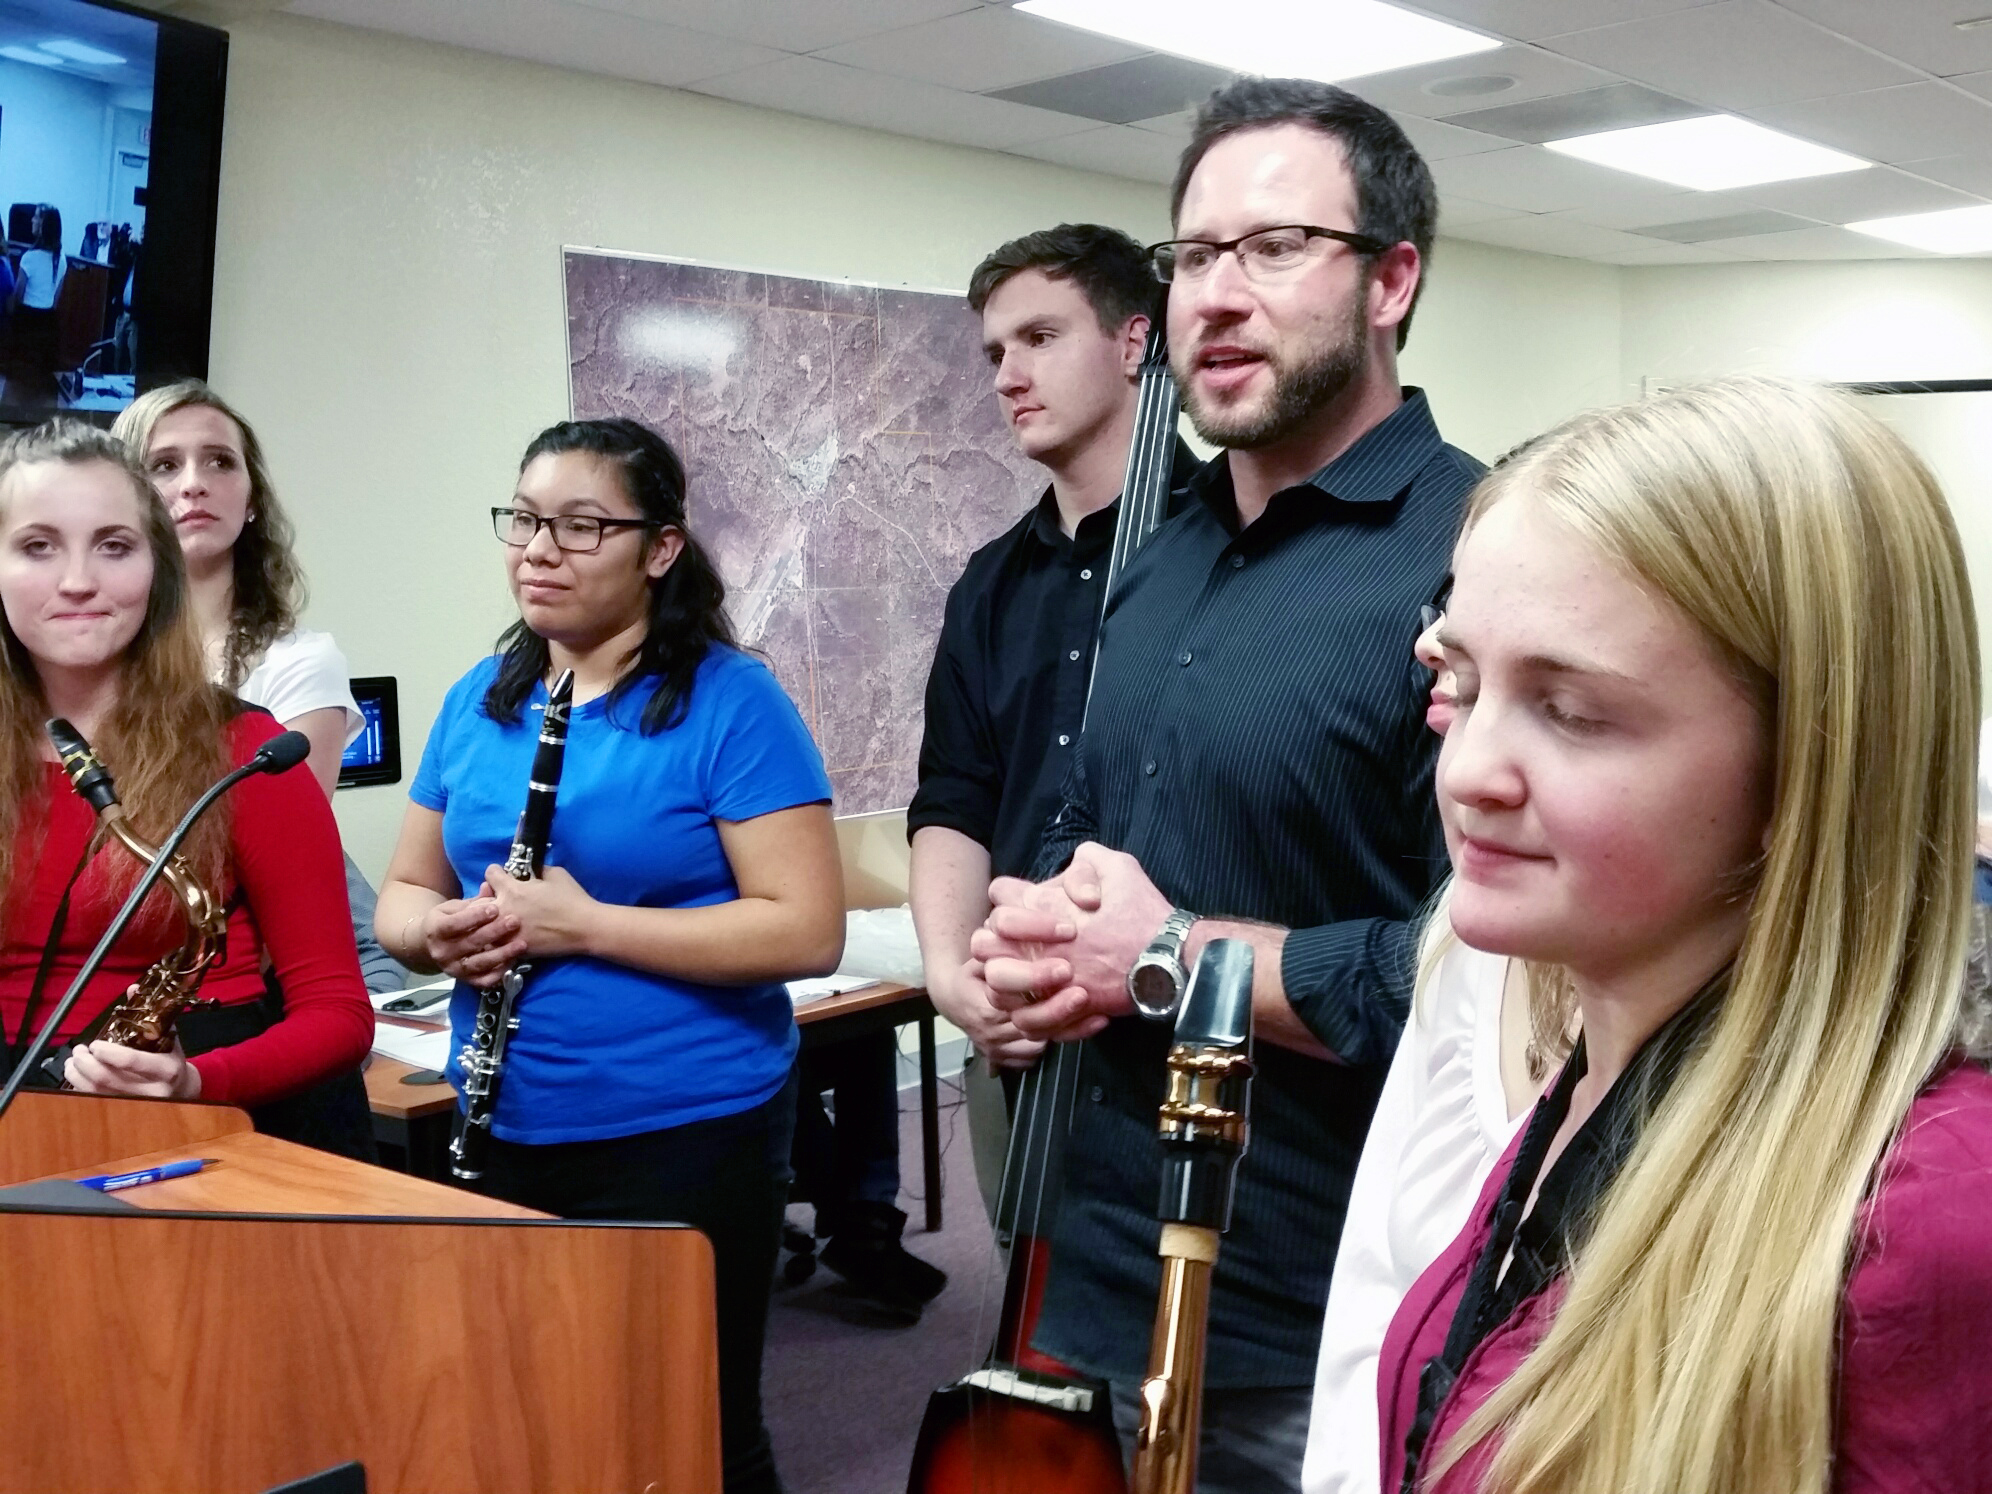 Grand canyon jazz band students receive new instruments for Interno 1 jazz council